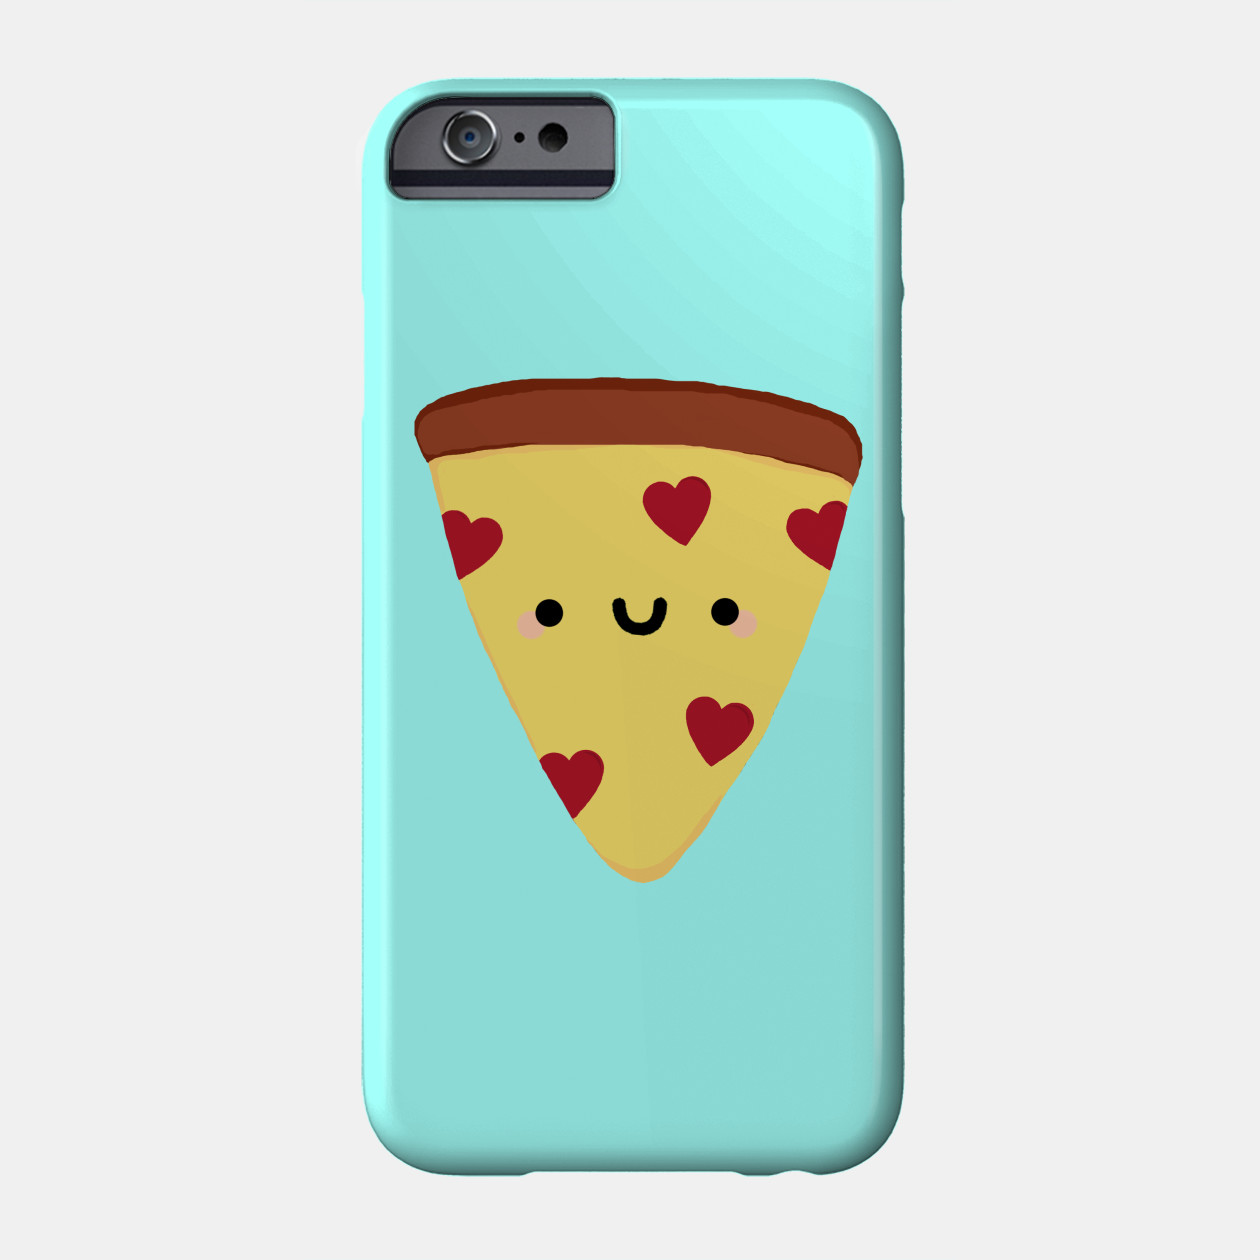 1260x1260 Cute Cell Phone Case, Pizza, Pizza Case, Kawaii Pizza, Pizza